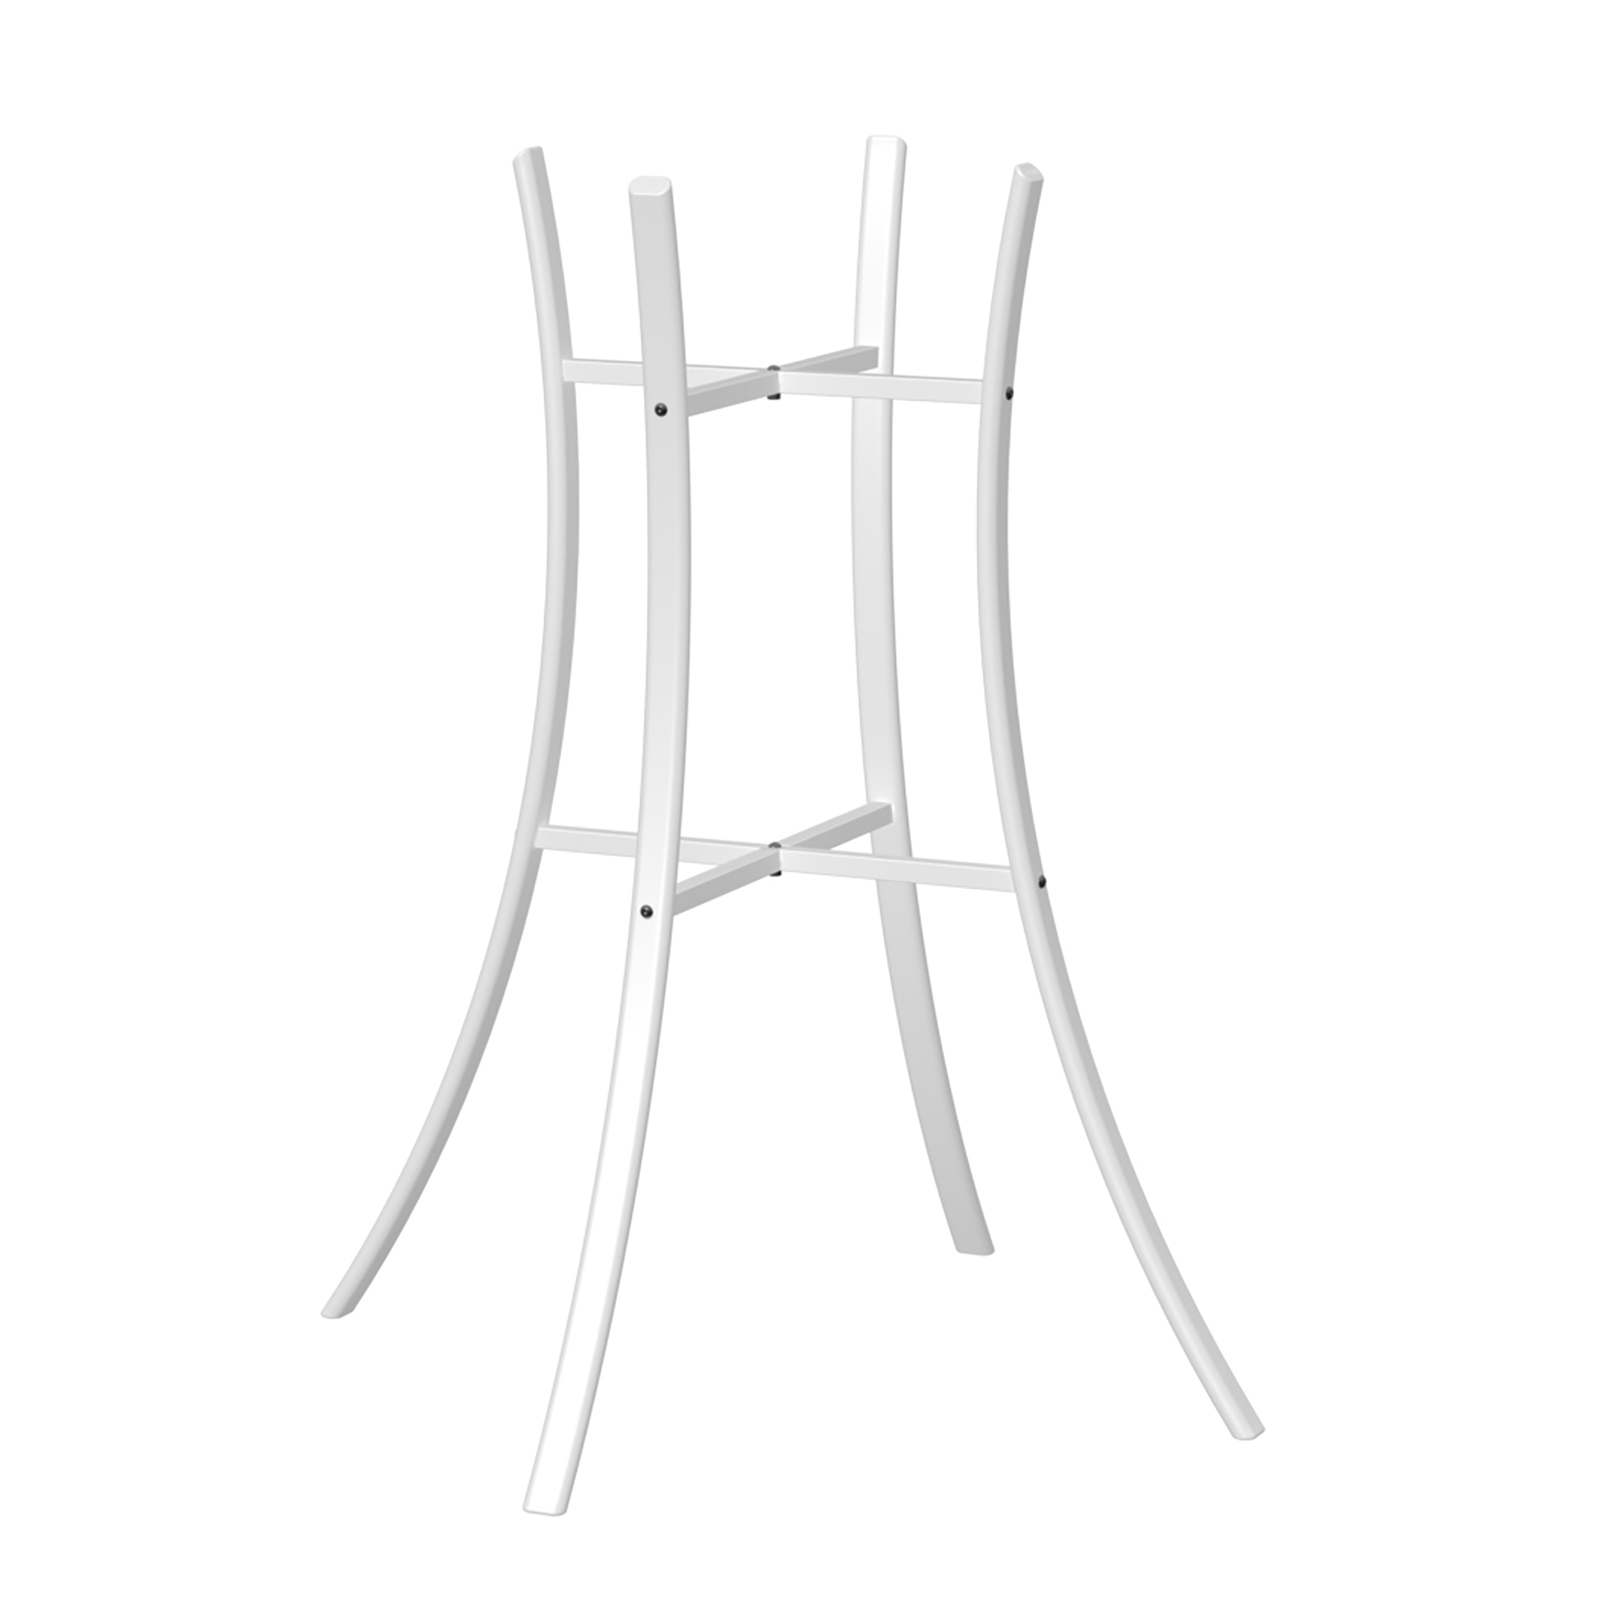 Shnuggle Baby Bath Stand - White   Buy at Online4baby